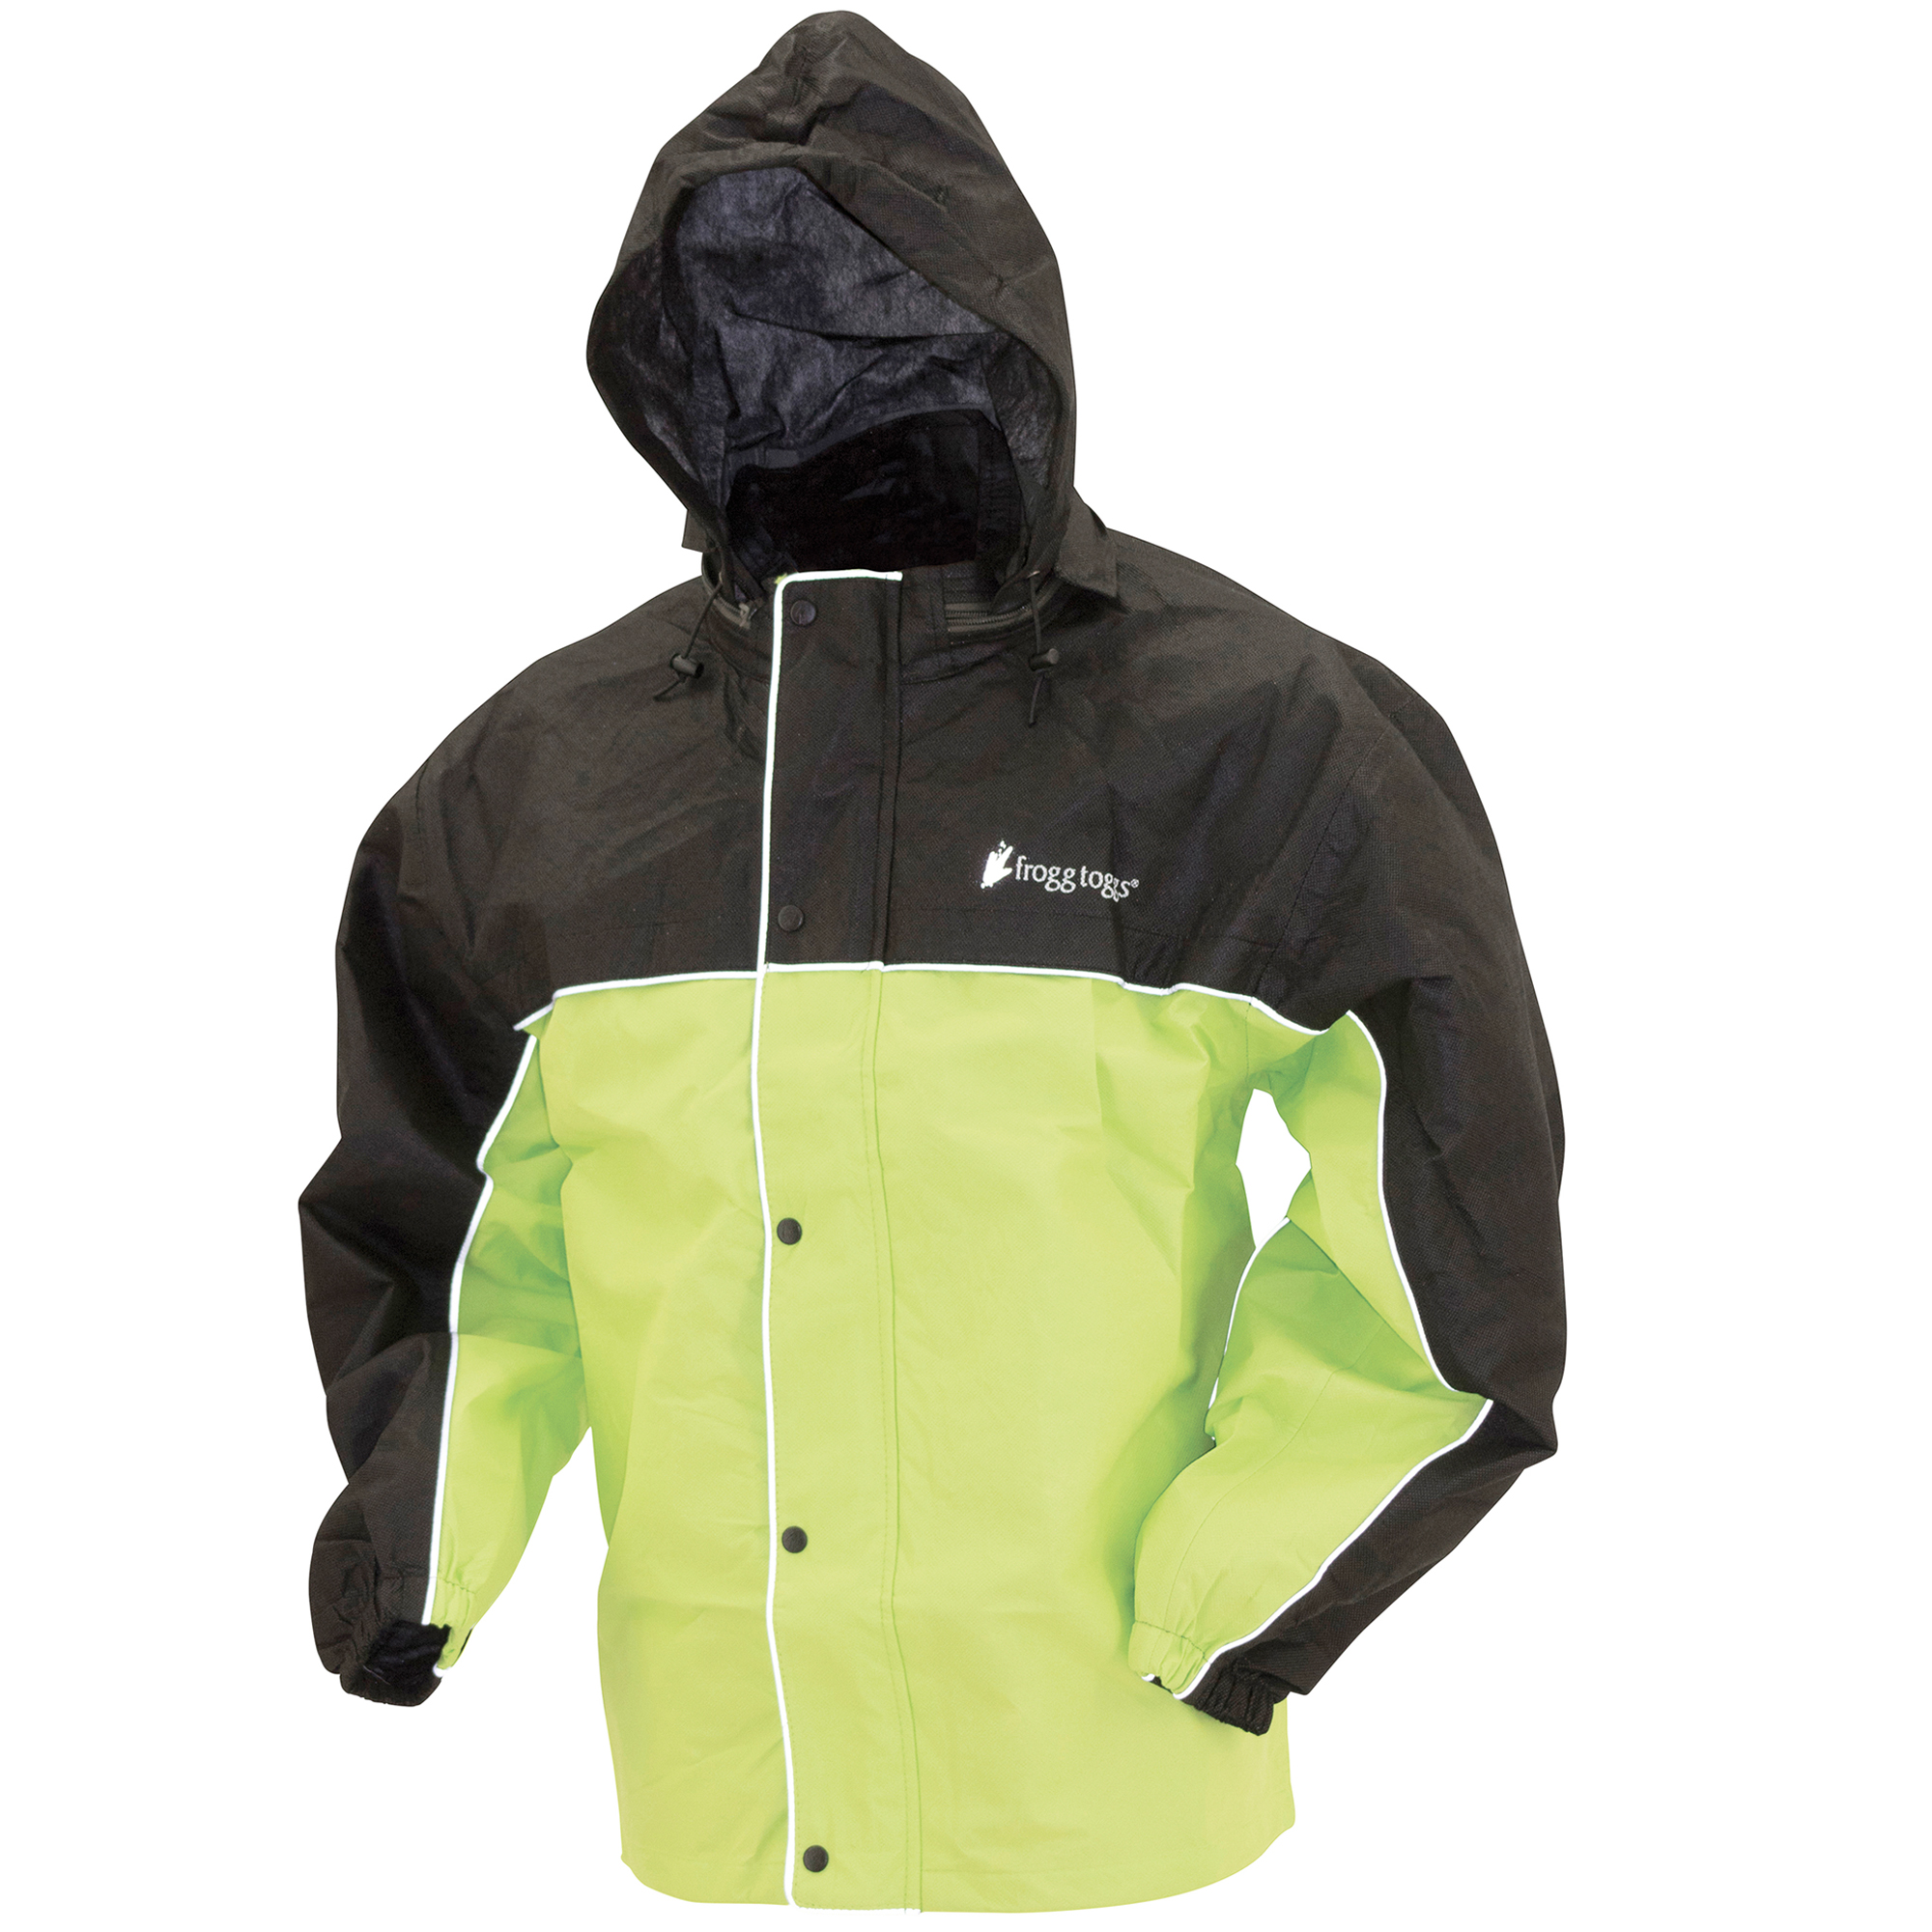 Frogg Toggs Road Toad Reflective Motorcycle Rain Jacket HiVis Green & Black LG